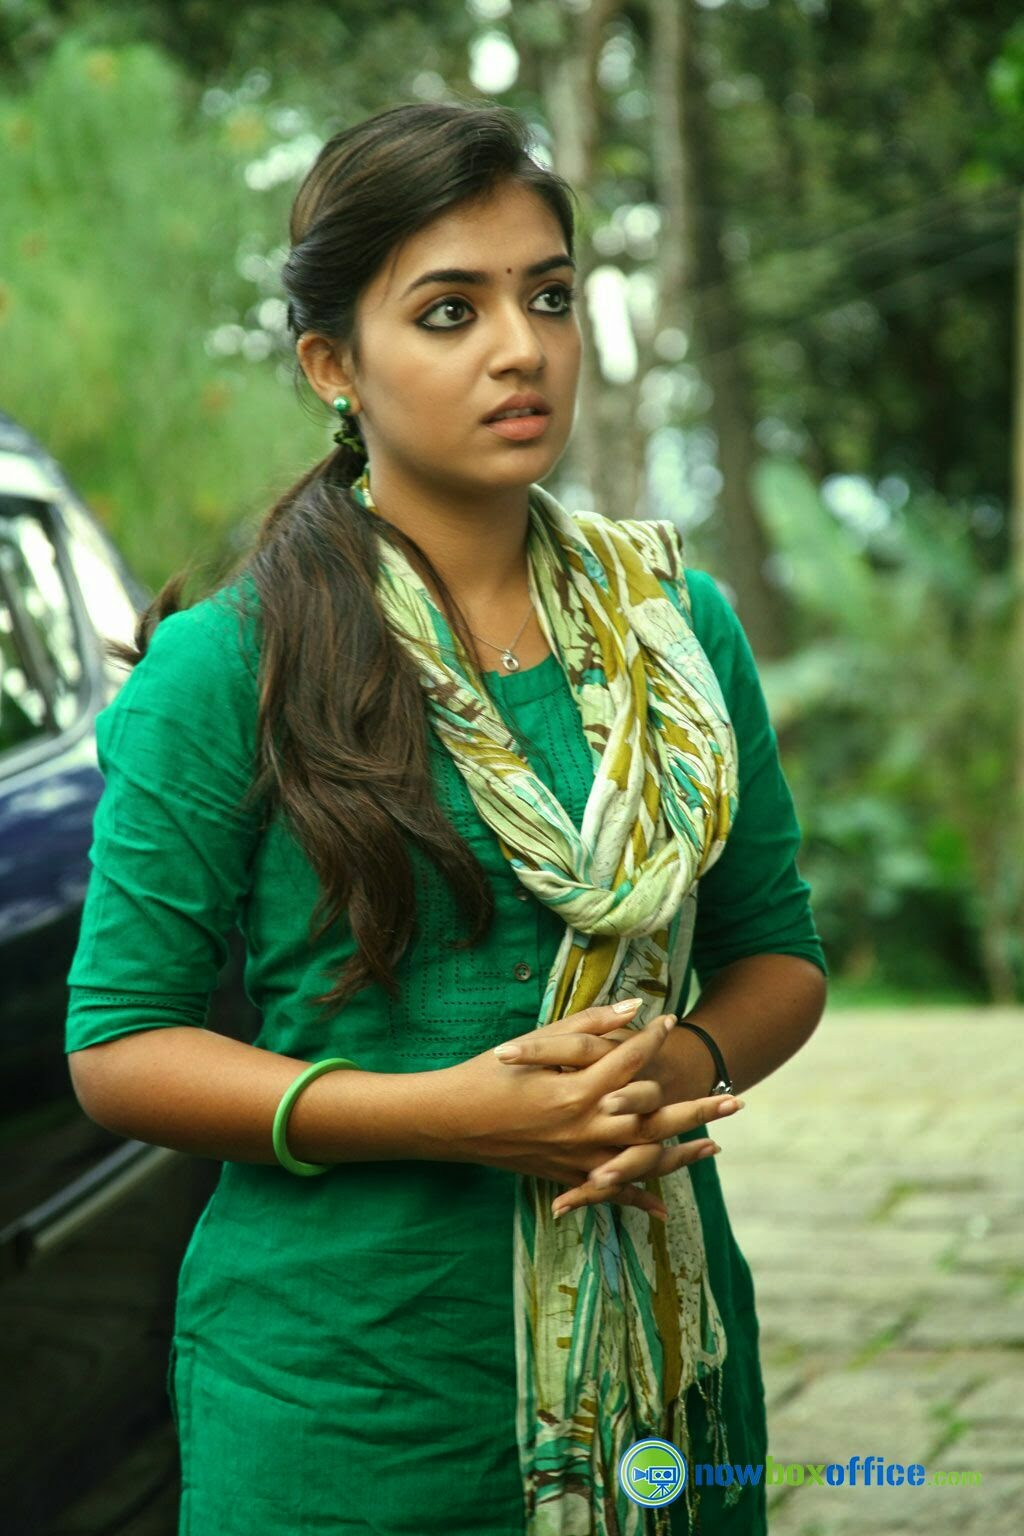 Official website of malayalam movie actress nazriya nazim nazriya in green tops altavistaventures Gallery